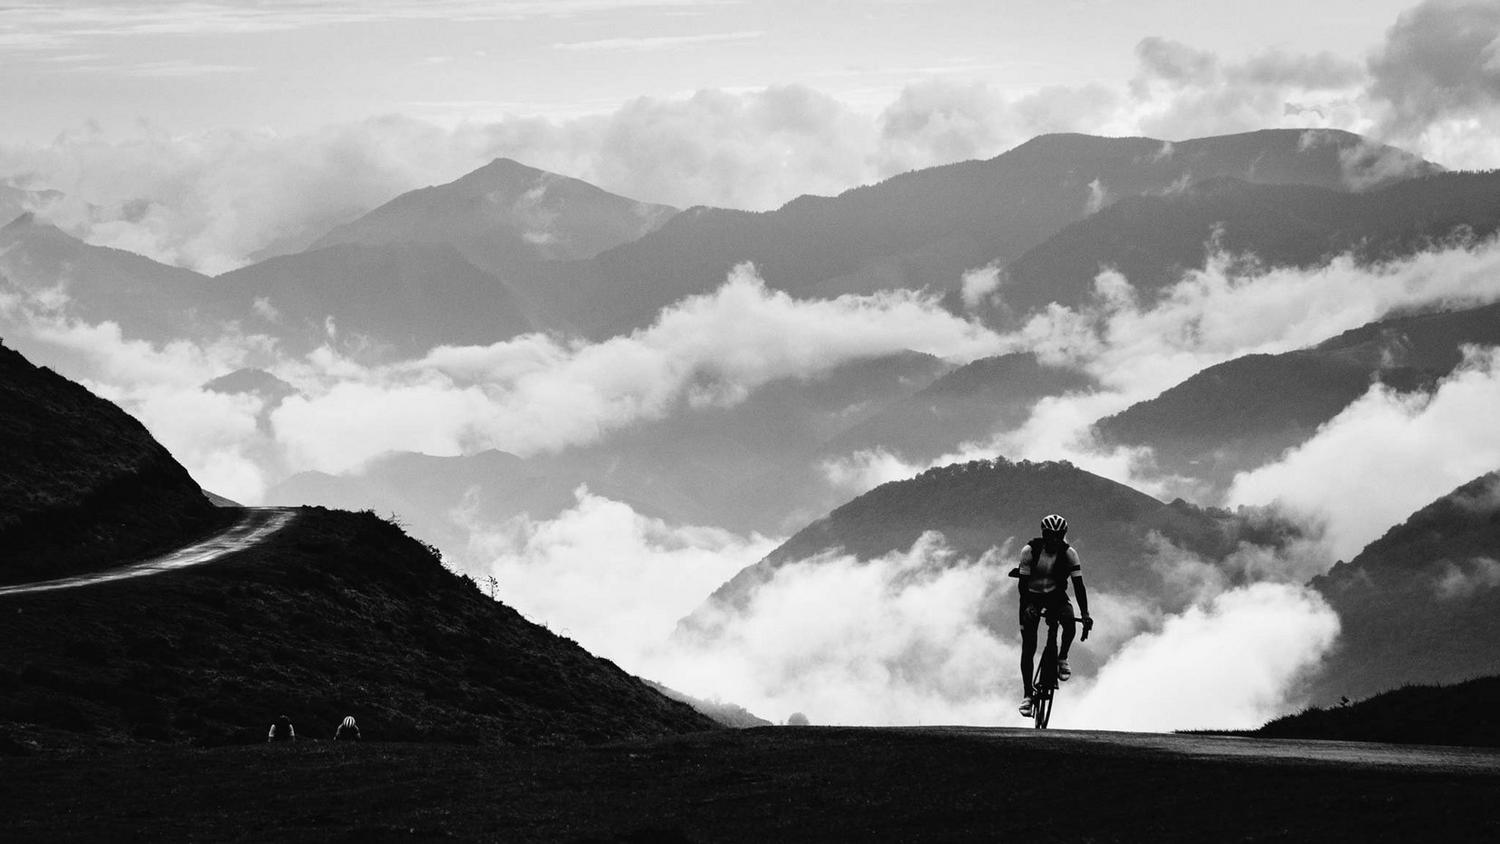 Last year, Phil Deeker, founder of Rapha Travel's Cent Cols Challenge, set out to ride 1,000 mountains in 100 days.